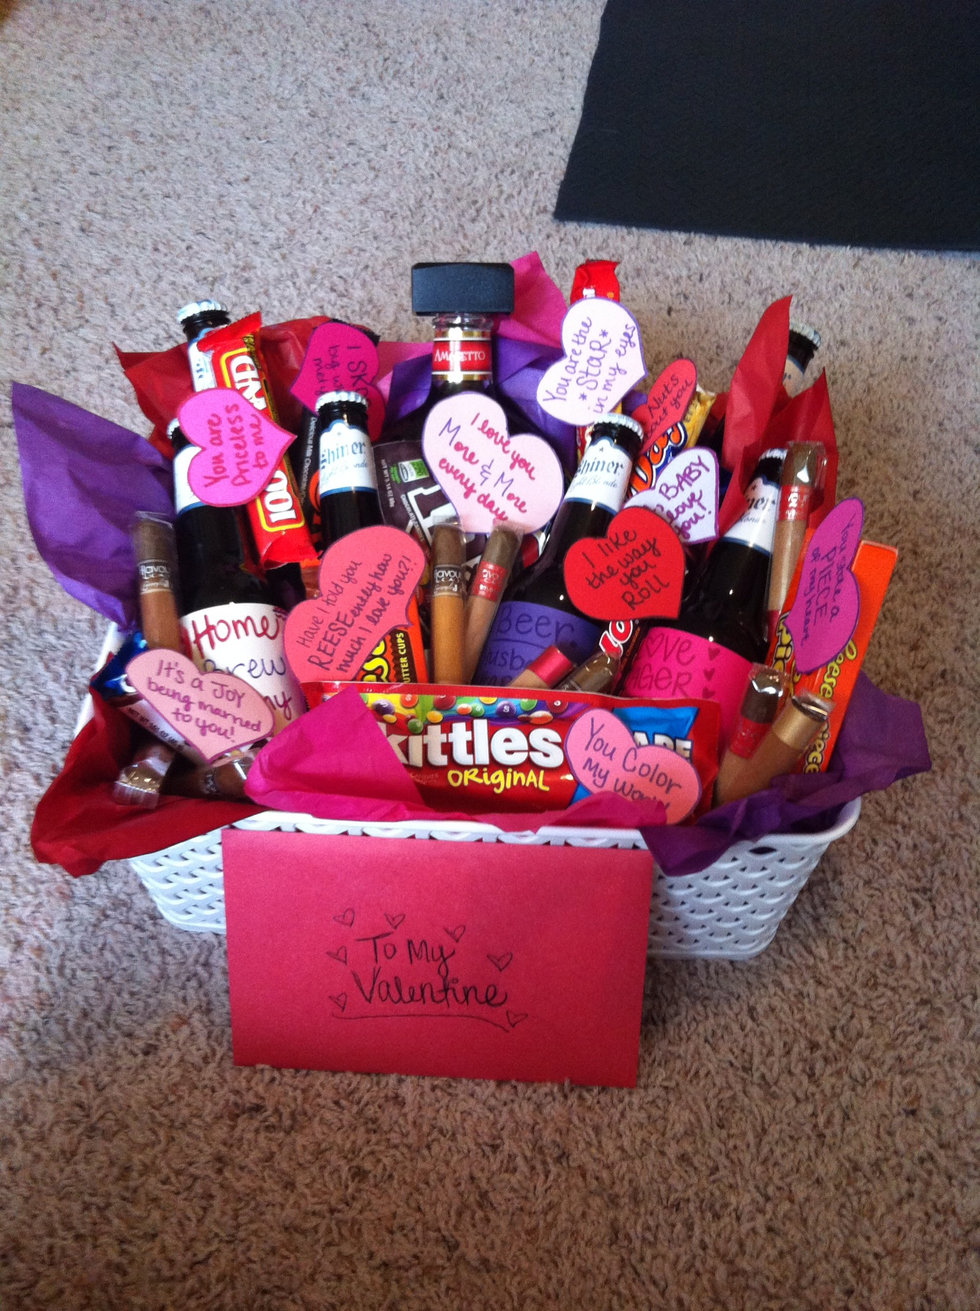 6 Things You Should Be Getting Your Boo On Valentines Day